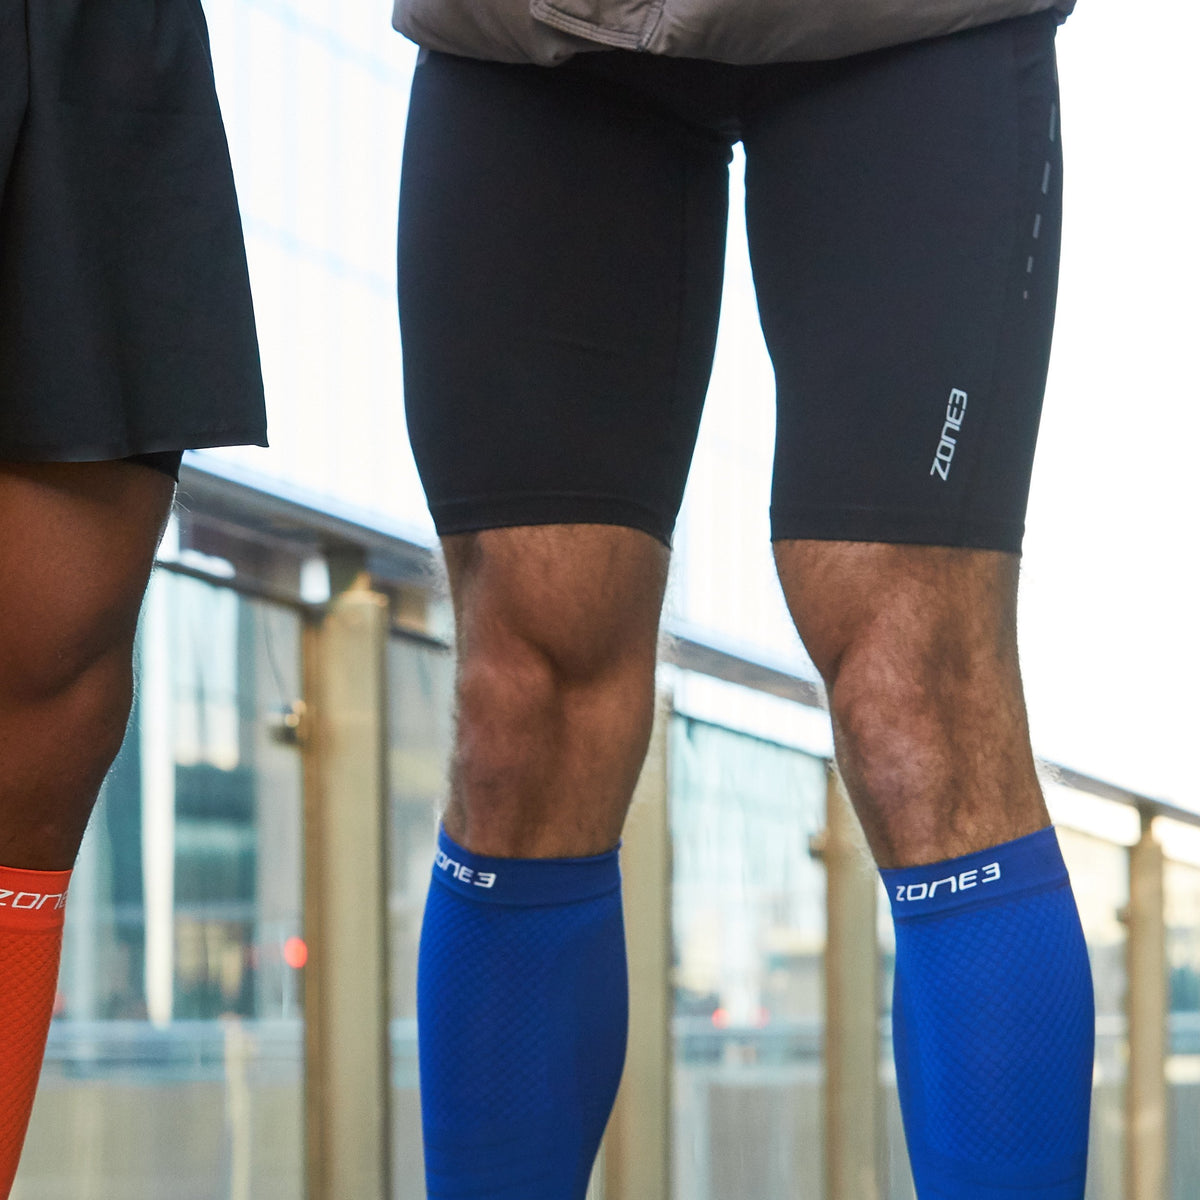 Men's RX3 Medical Grade Compression Shorts sock